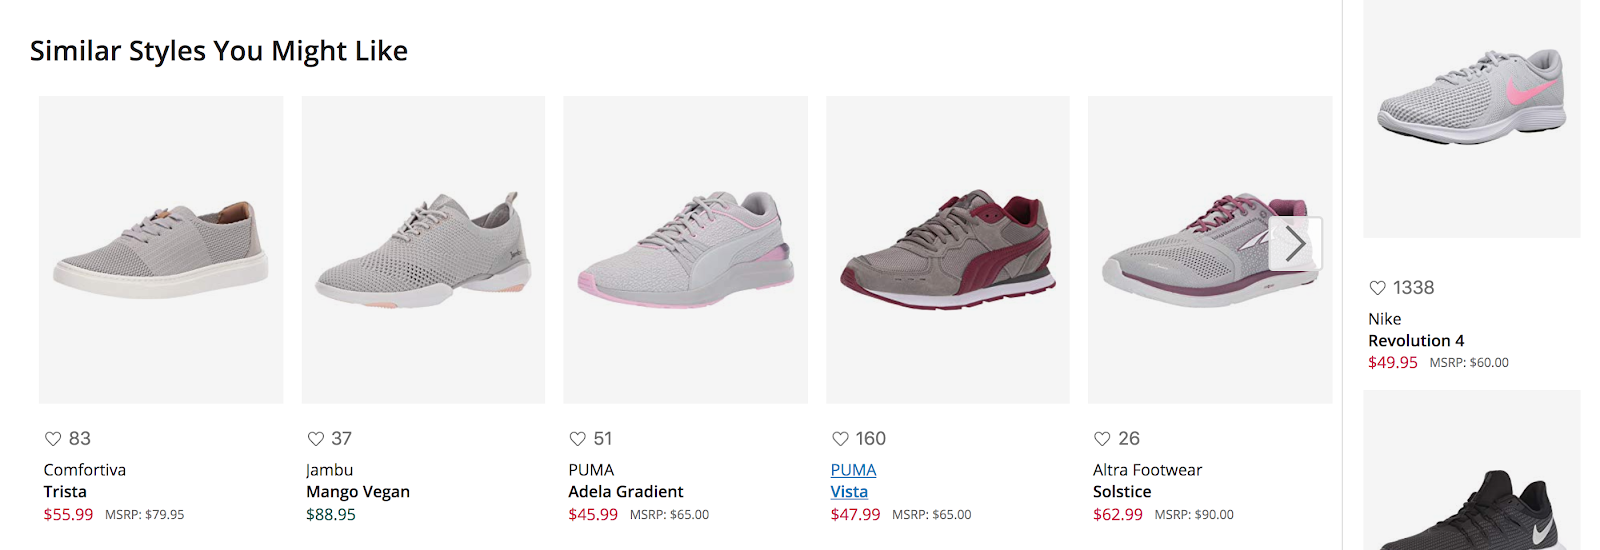 A product recommendation carousel on Zappos.com